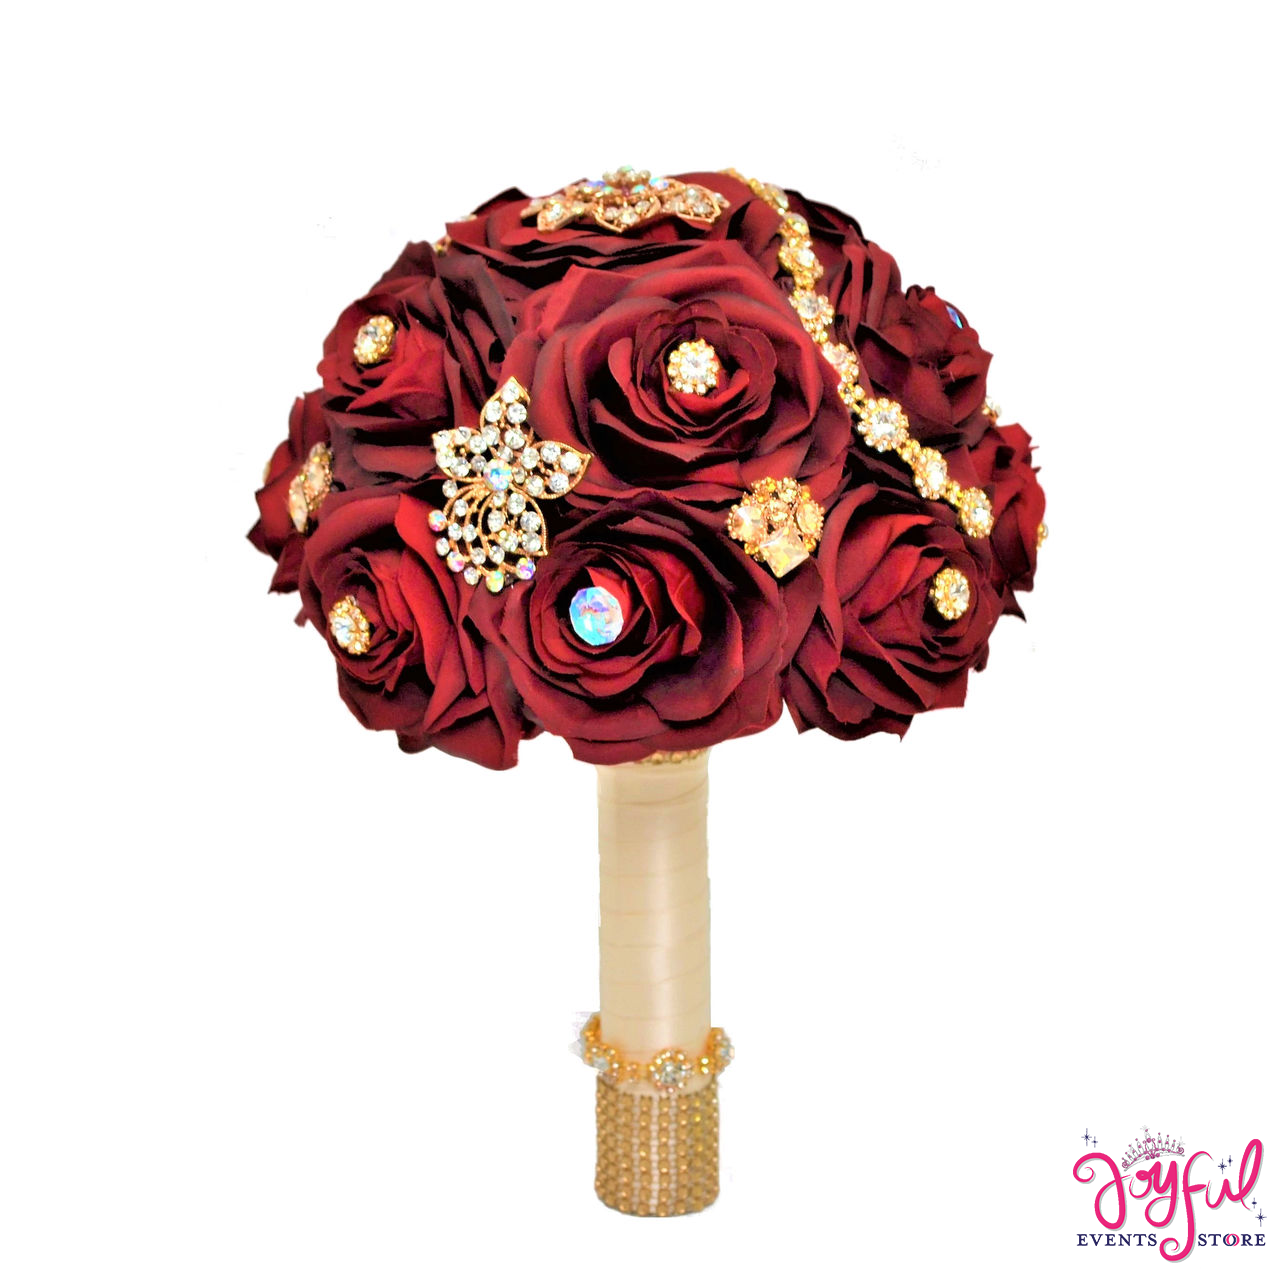 11 Silk Round Rose Flower Bouquet Embellished With Crystals And Brooches For Brides Or Quinceaneras One Rac80 Joyful Events Store